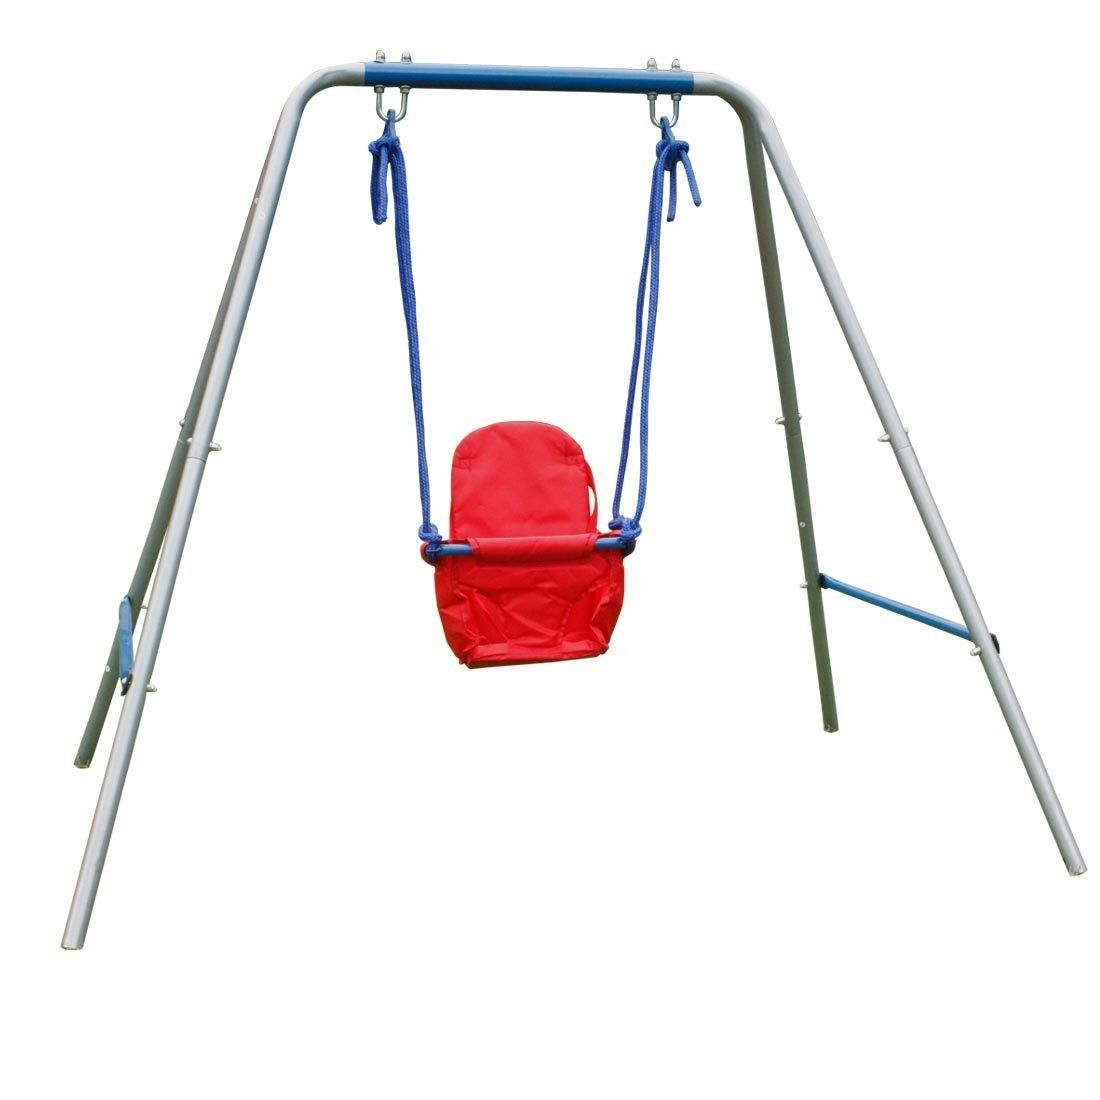 BestValue GO 5.5 FT High Toddler Baby Swing Seat with Frame for 1 to ...